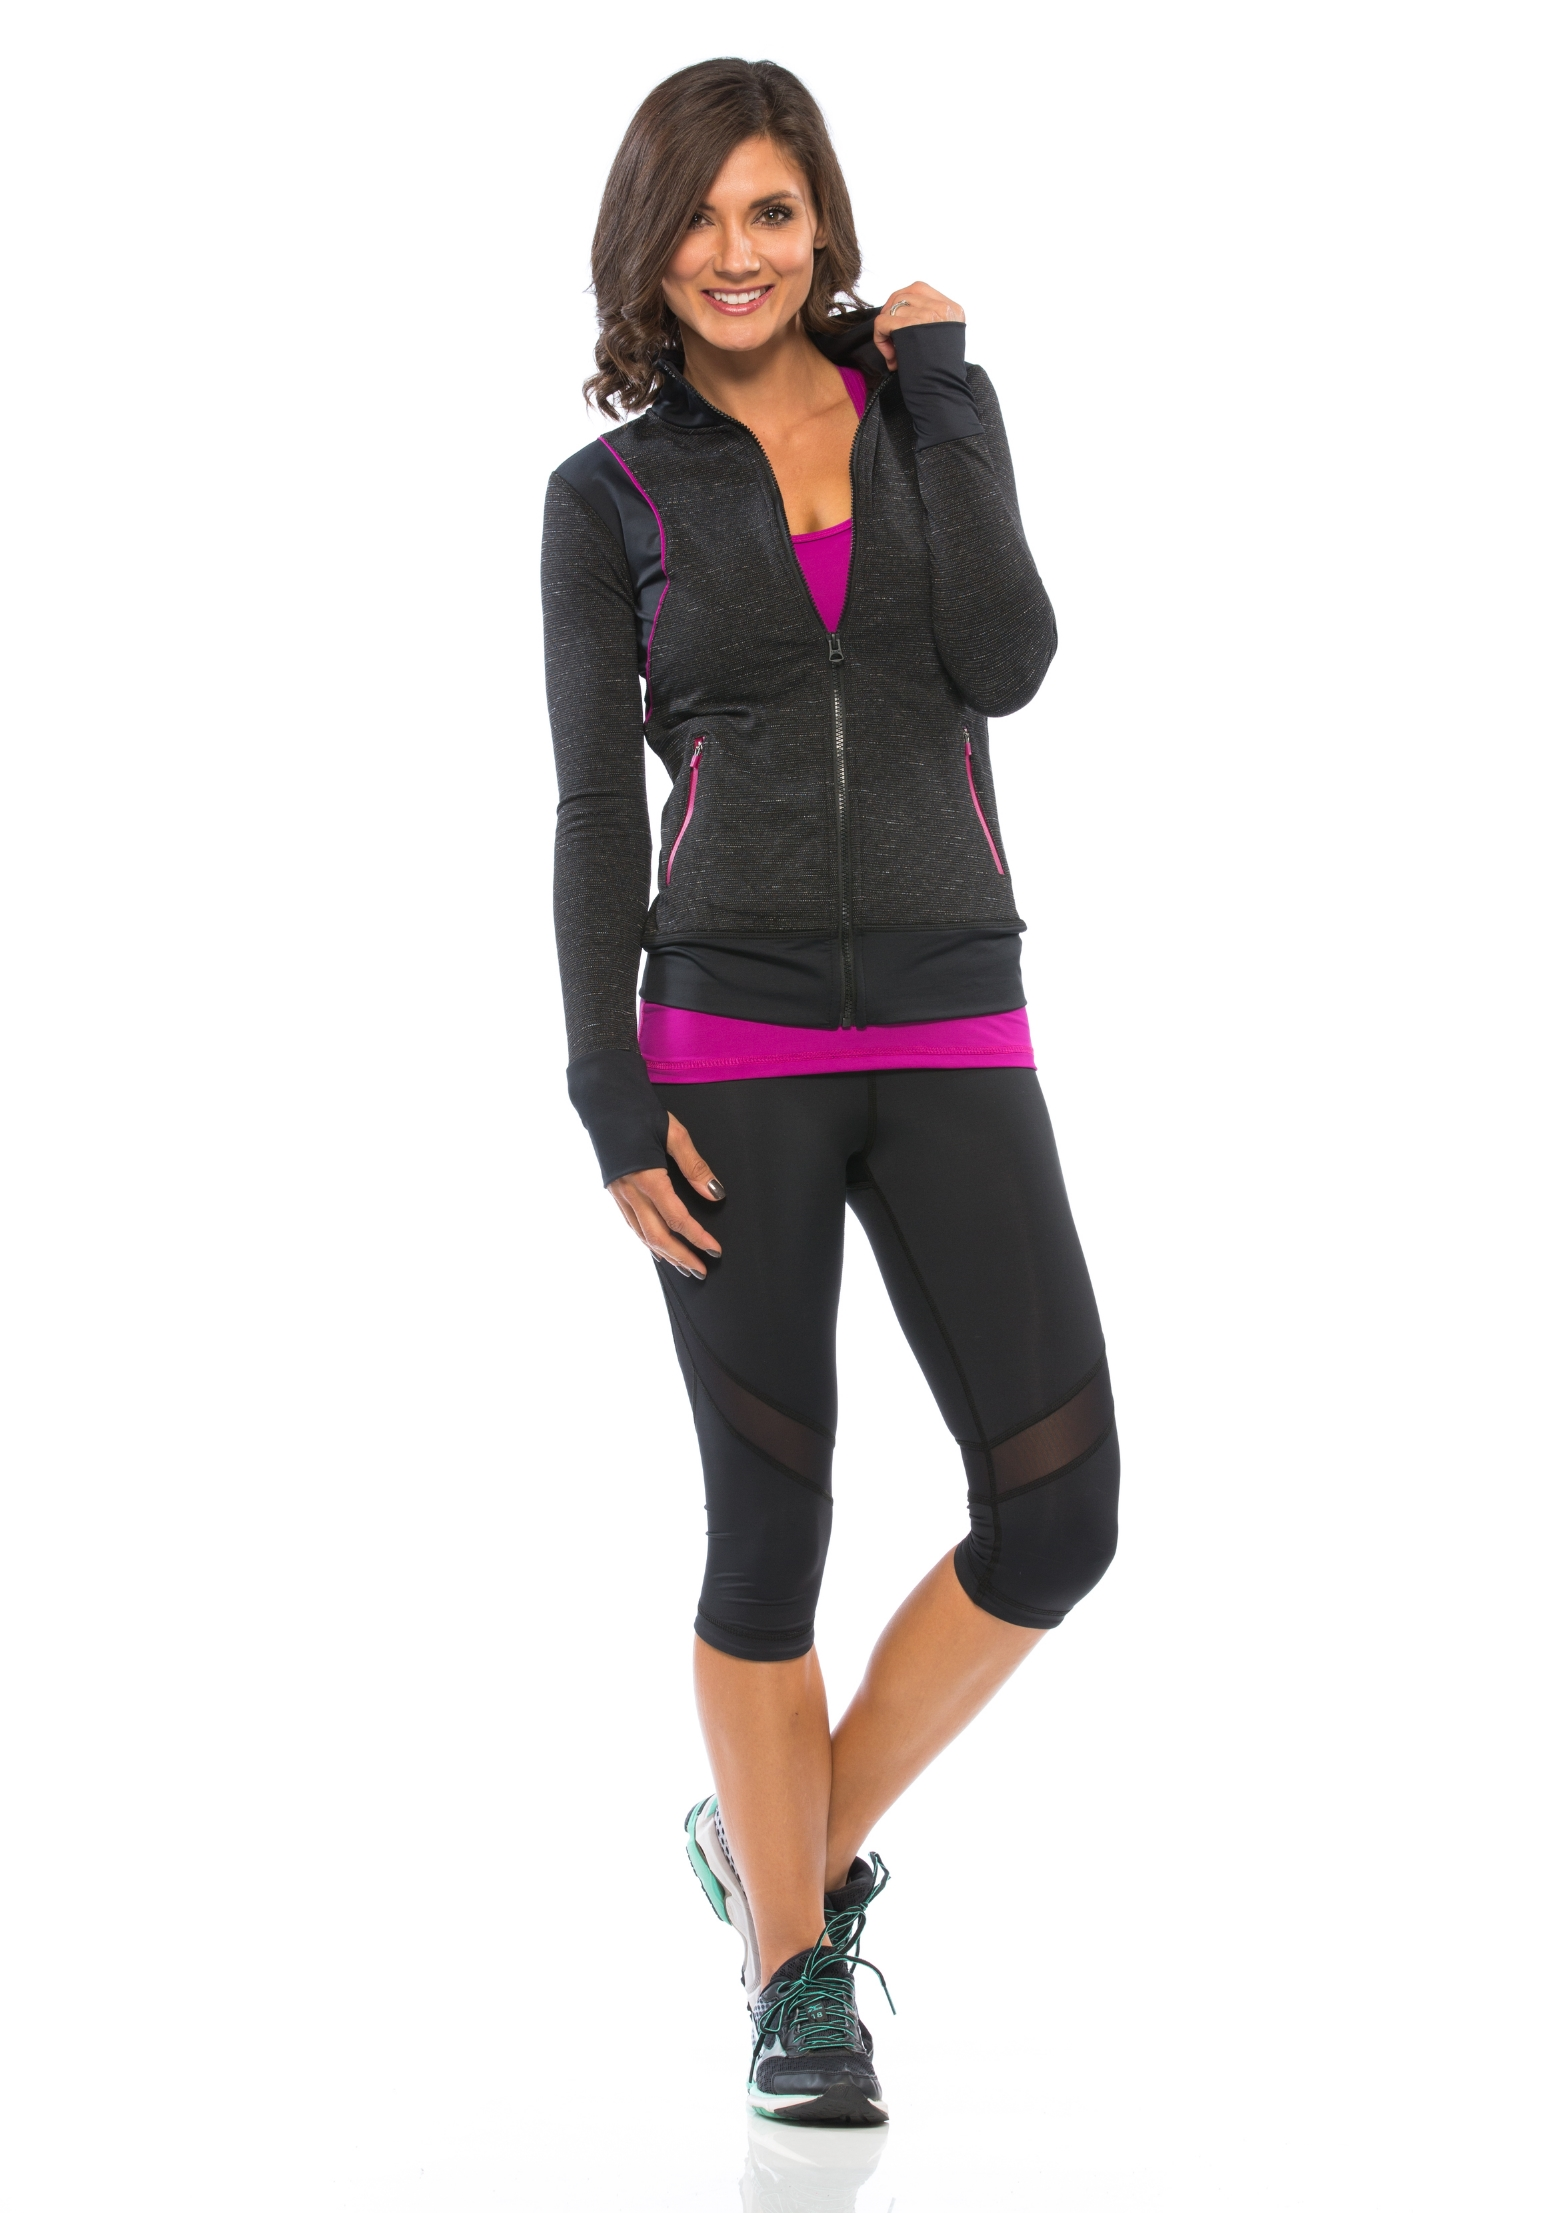 Frontrunner Jacket , Clutch Tank,and Take Sides Knee Tight